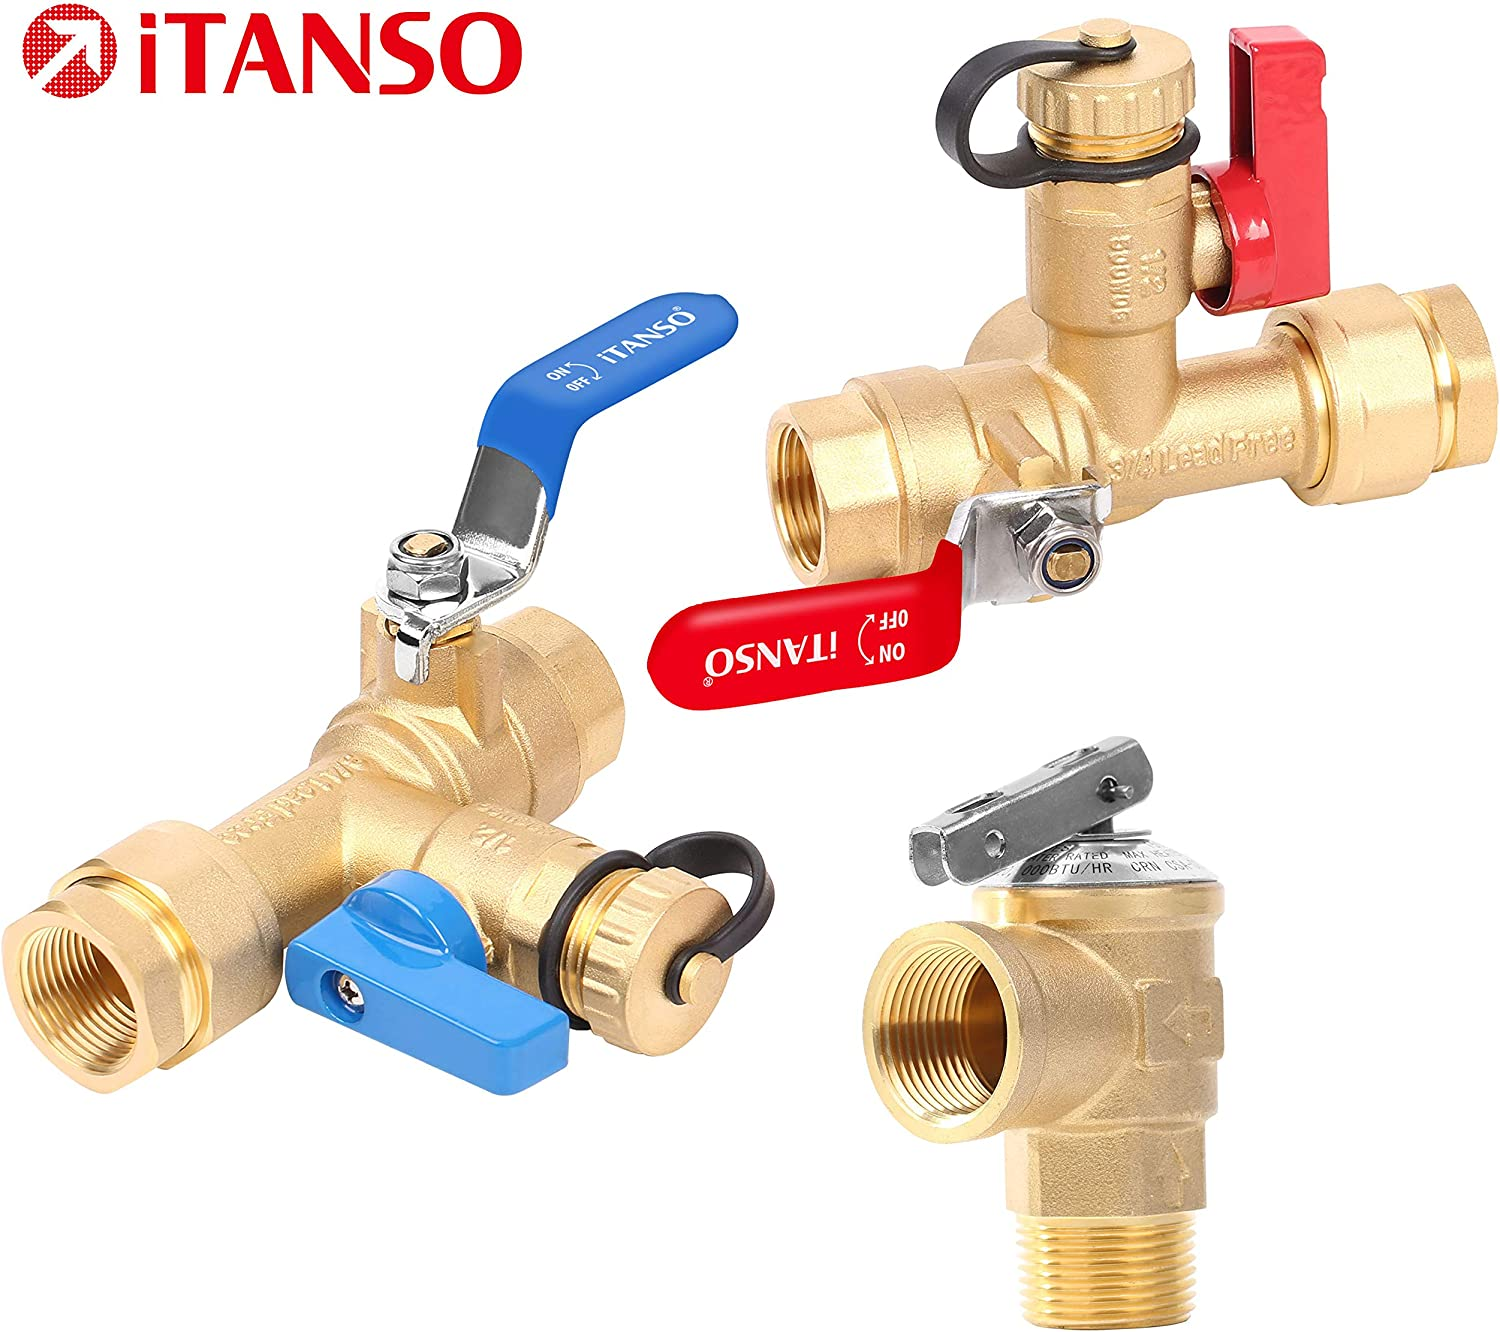 iTANSO 3/4-Inch IPS Isolator Tankless Water Heater Service Valve Kit with Clean Brass Construction